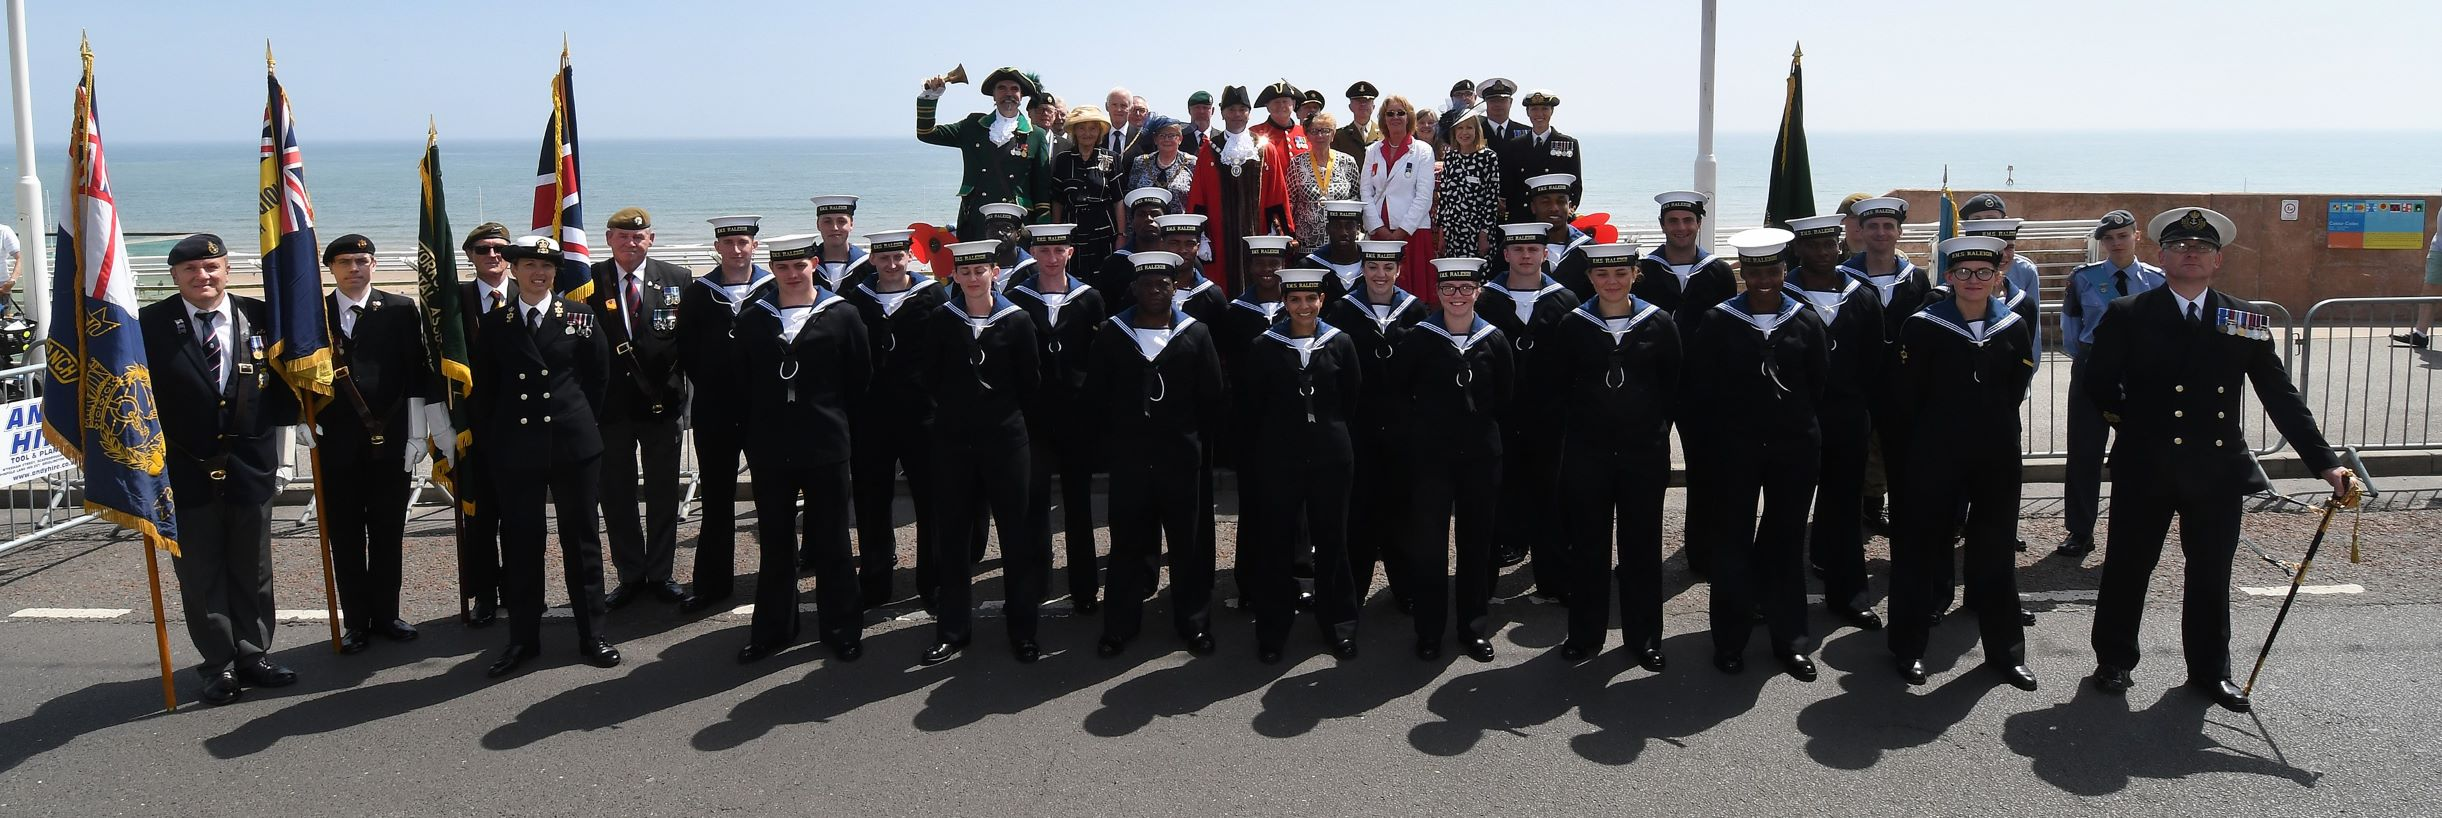 Freedom of Entry to the Royal Navy